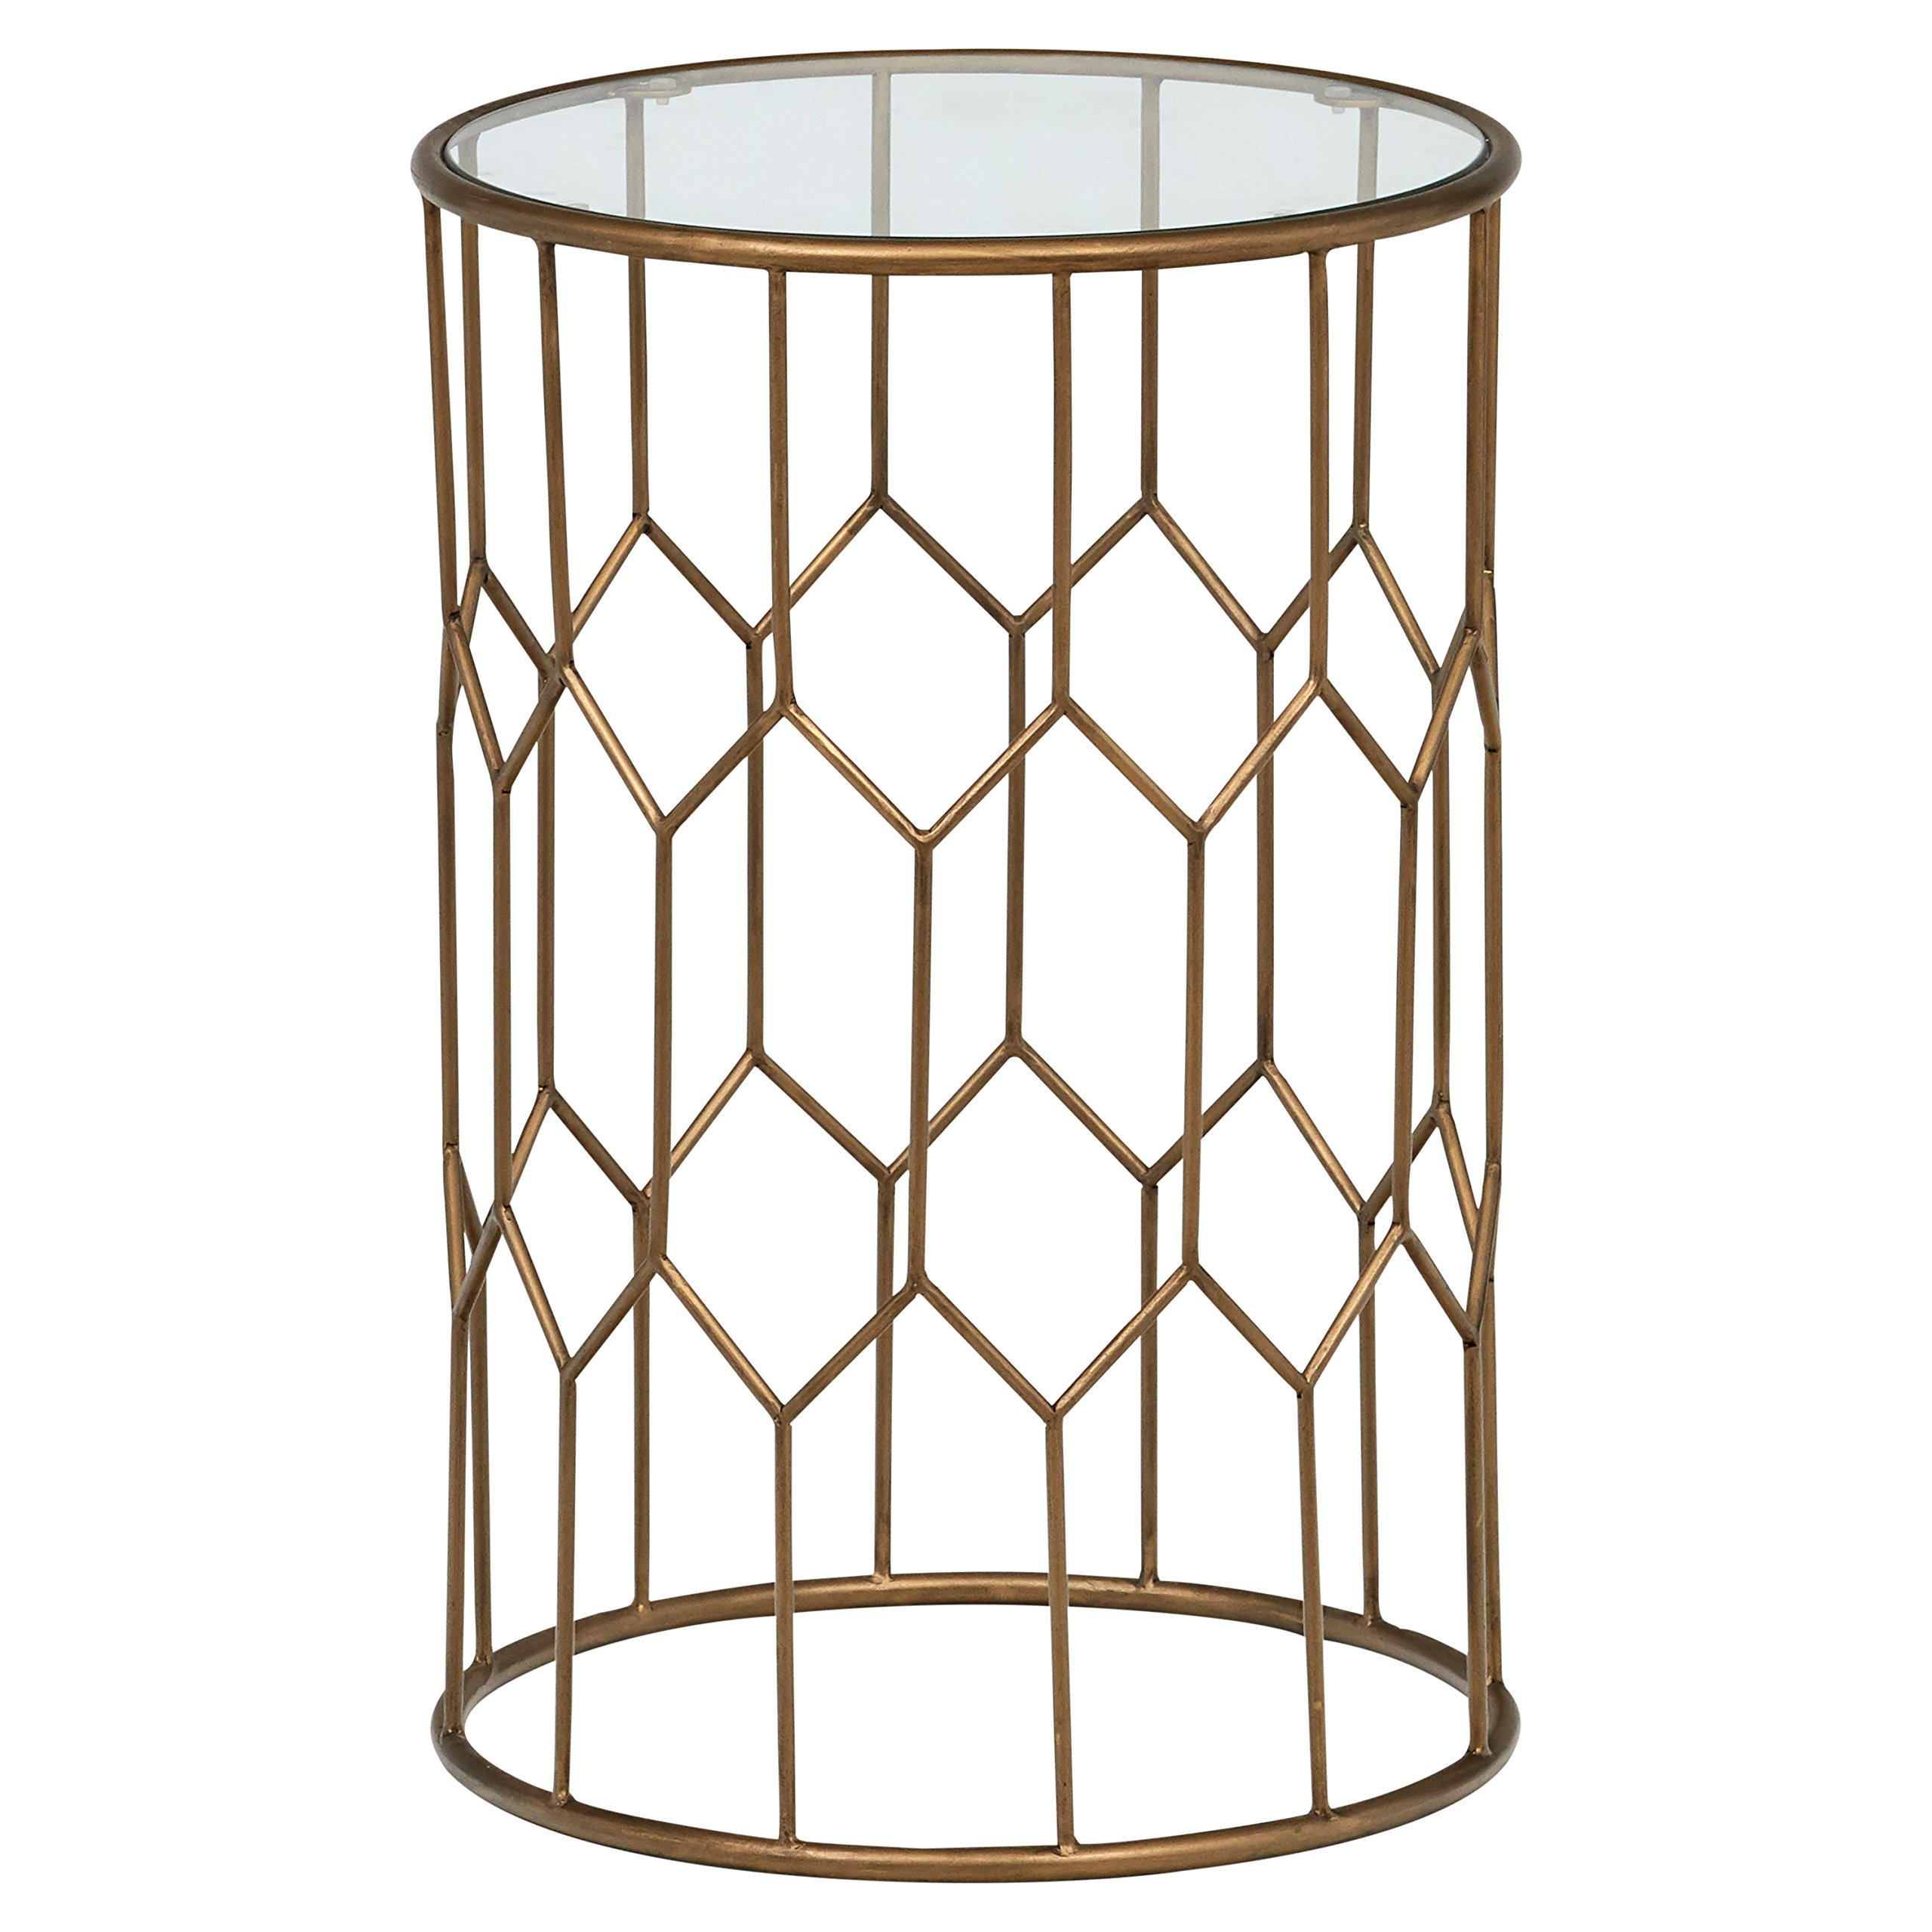 Rivet Geometric Modern Glass and Metal End Table, 15.6'' W, Gold Finish